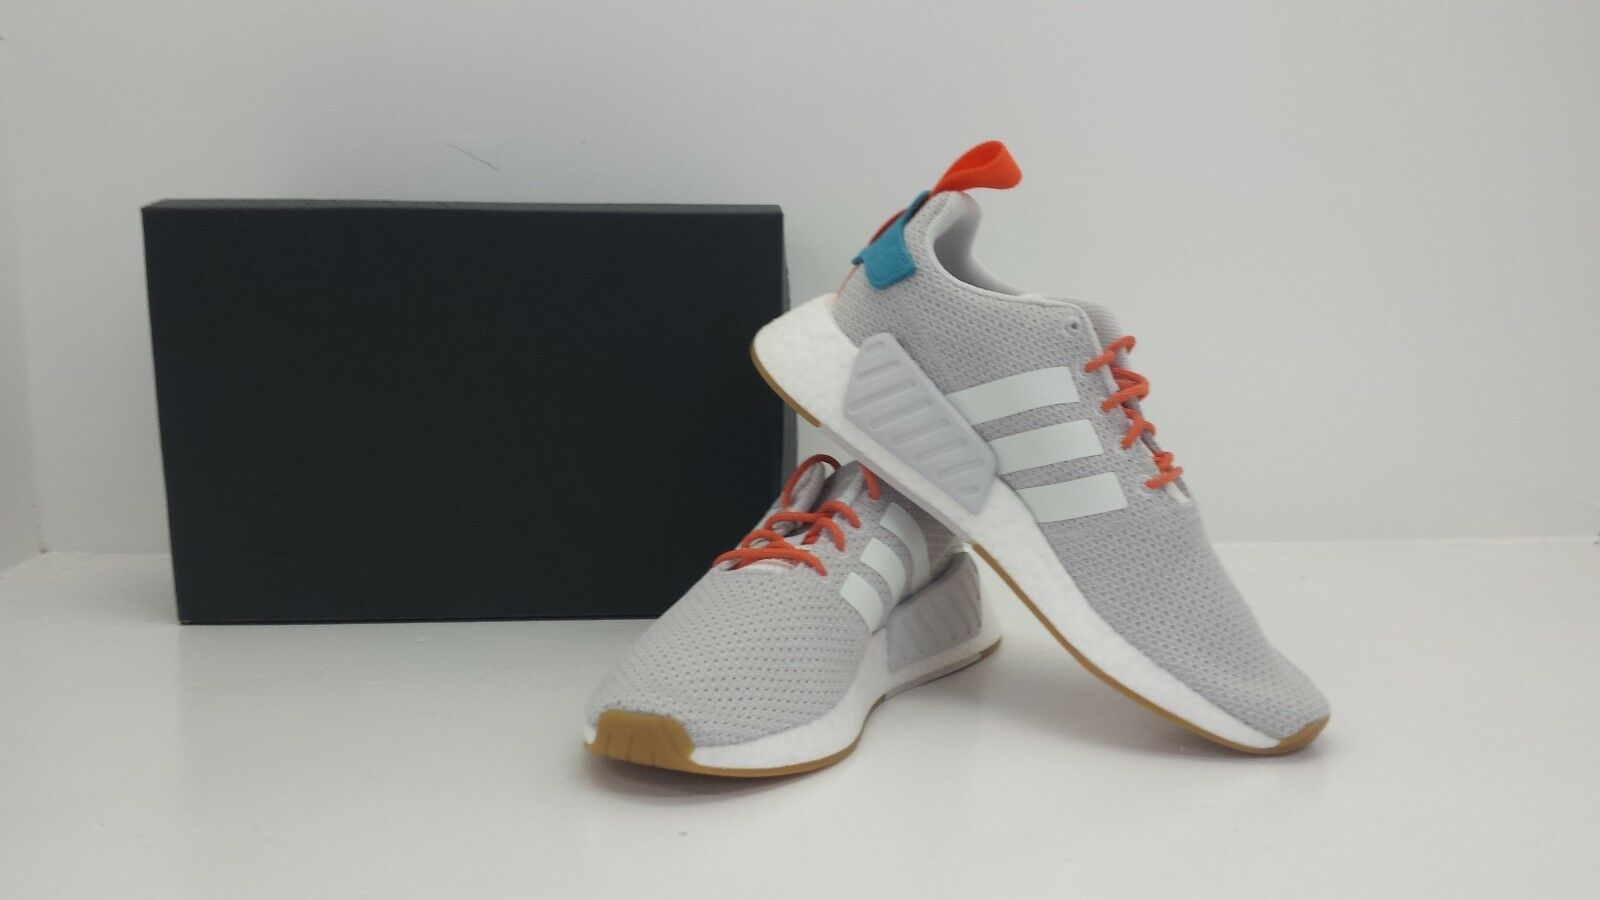 sports shoes 5c642 93cd6 adidas NMD R2 Summer Mens CQ3080 Grey White Orange Boost Running Shoes Size  9